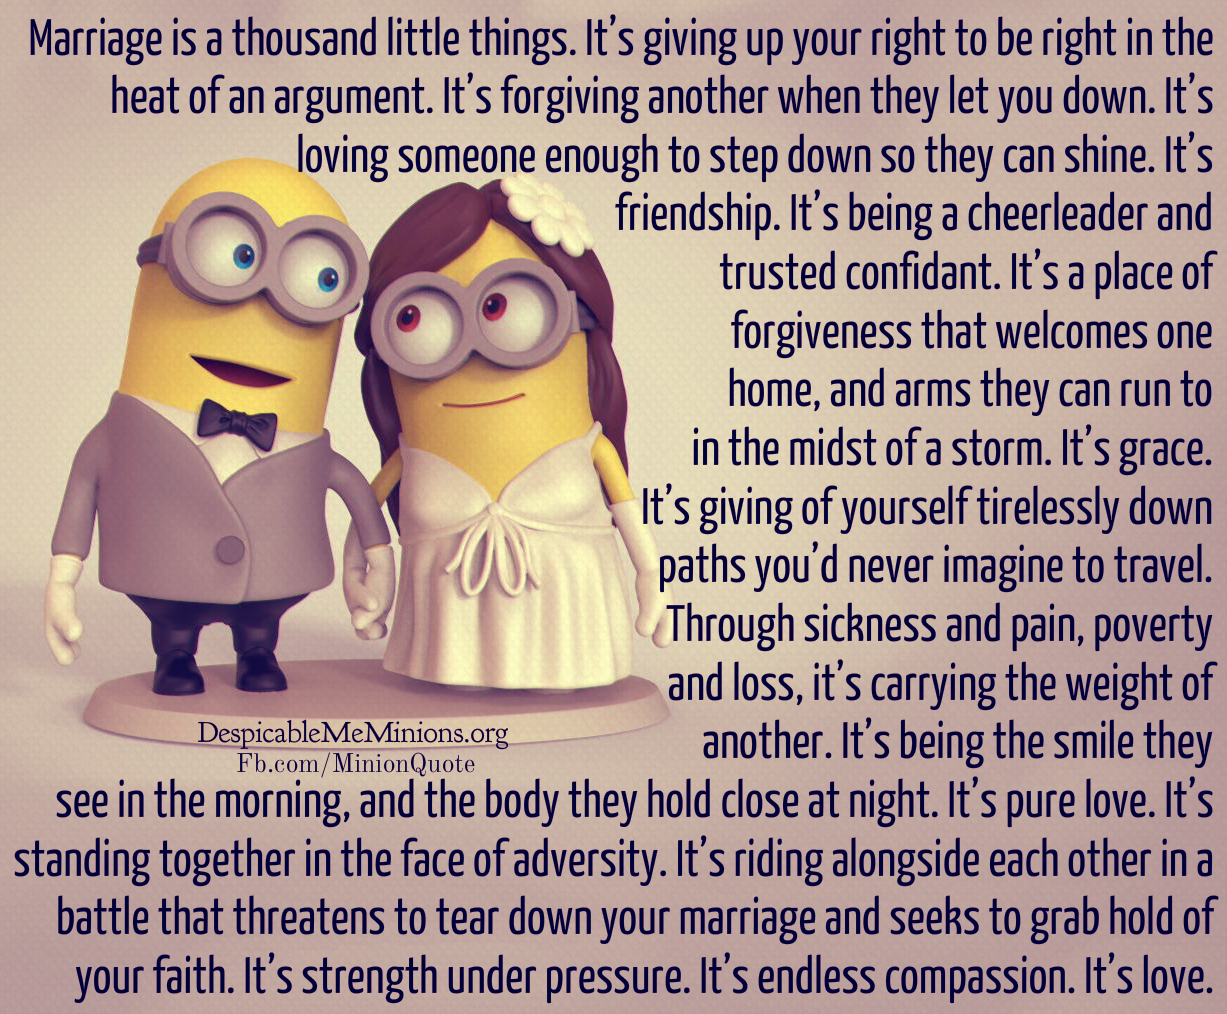 MARRIAGE IS A THOUSAND LITTLE THINGS It s giving up your right to be right in